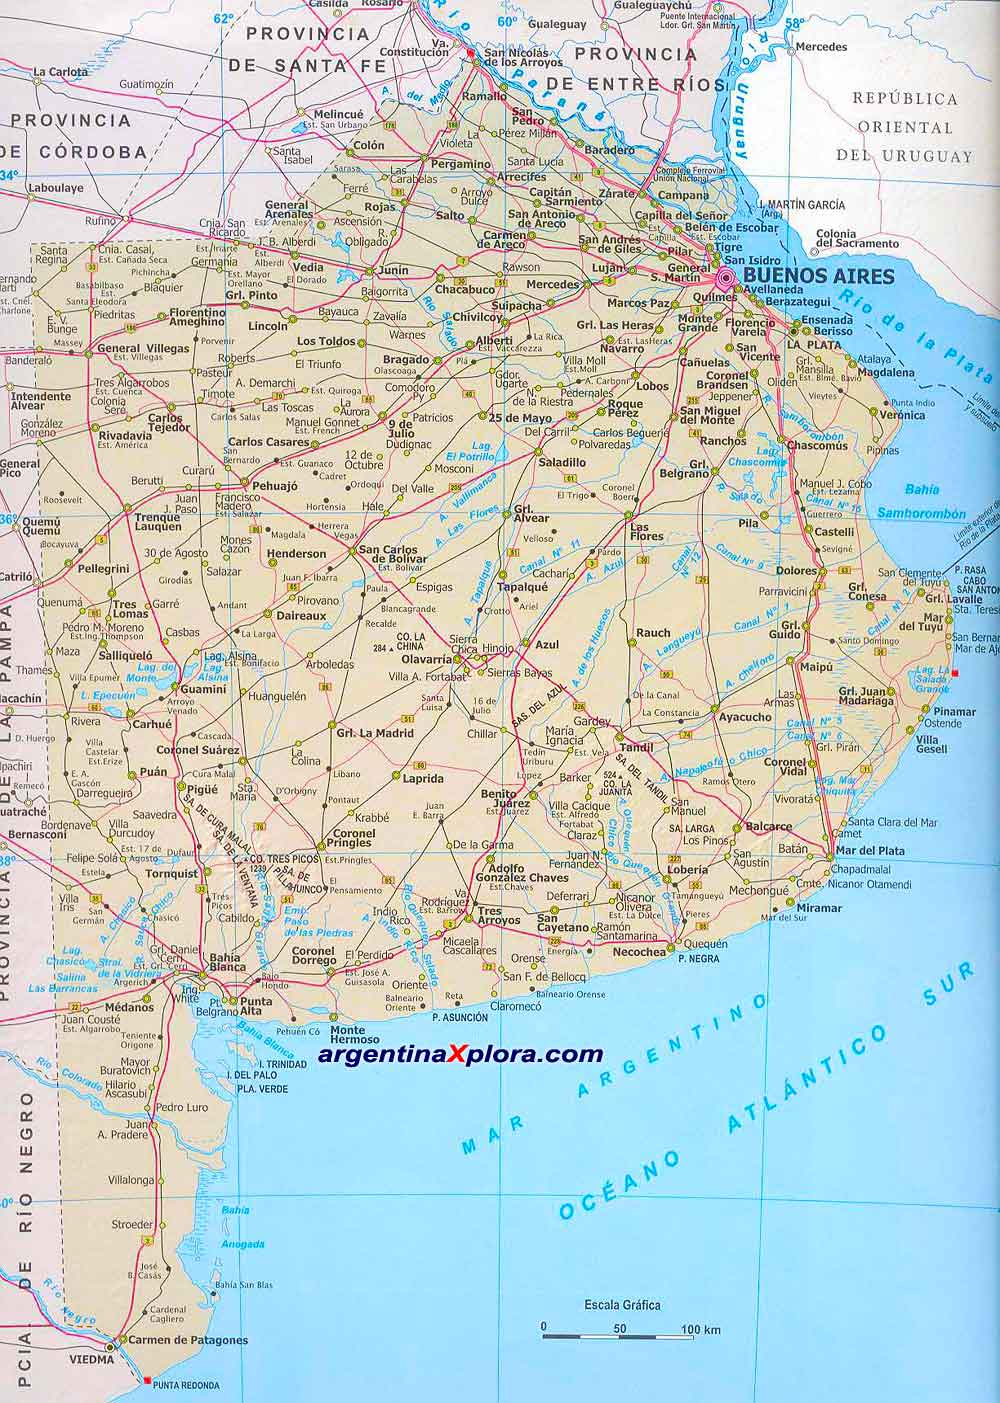 road map and locations of buenos aires argentina. map of the province of buenos aires